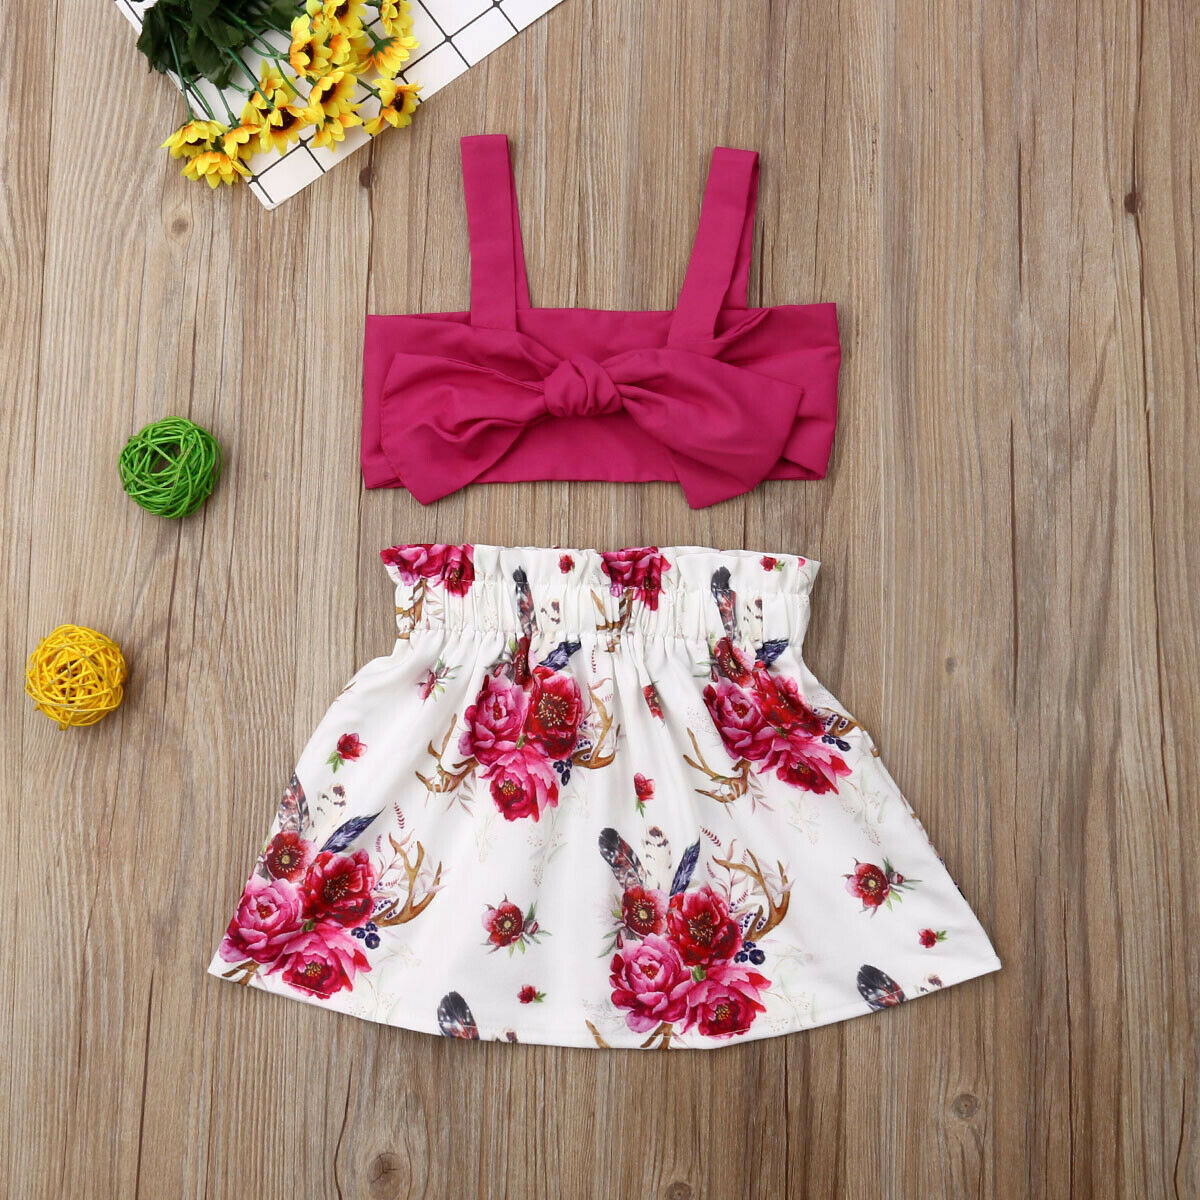 Popular Brand 2019 Baby Girl Clothes 2pcs Kids Girls Striped Ruffle T-shirt Tops+flowers Wide Leg Pants Outfits 2-7y Hot Discounts Sale Clothing Sets